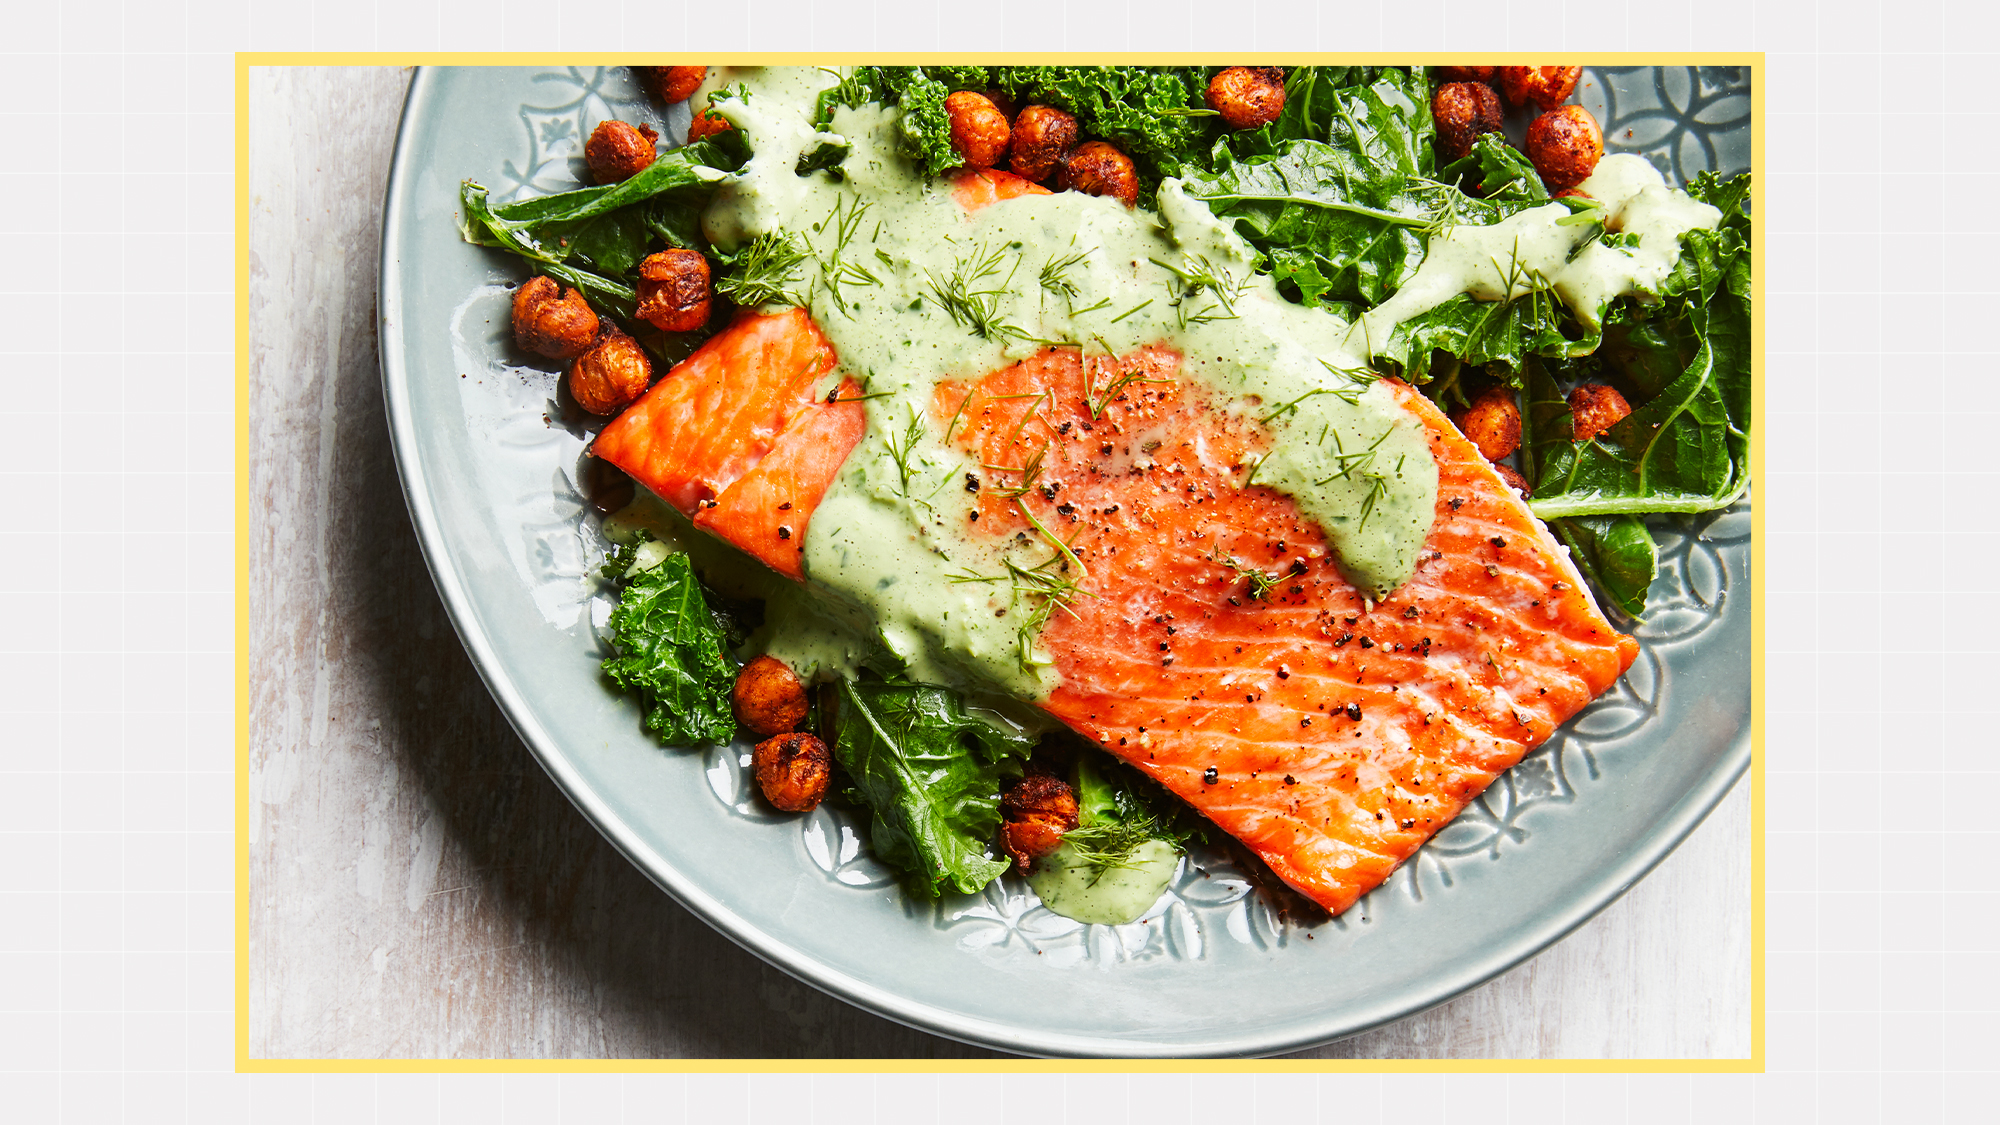 Roasted Salmon with Smoky Chickpeas & Greens with a designed background